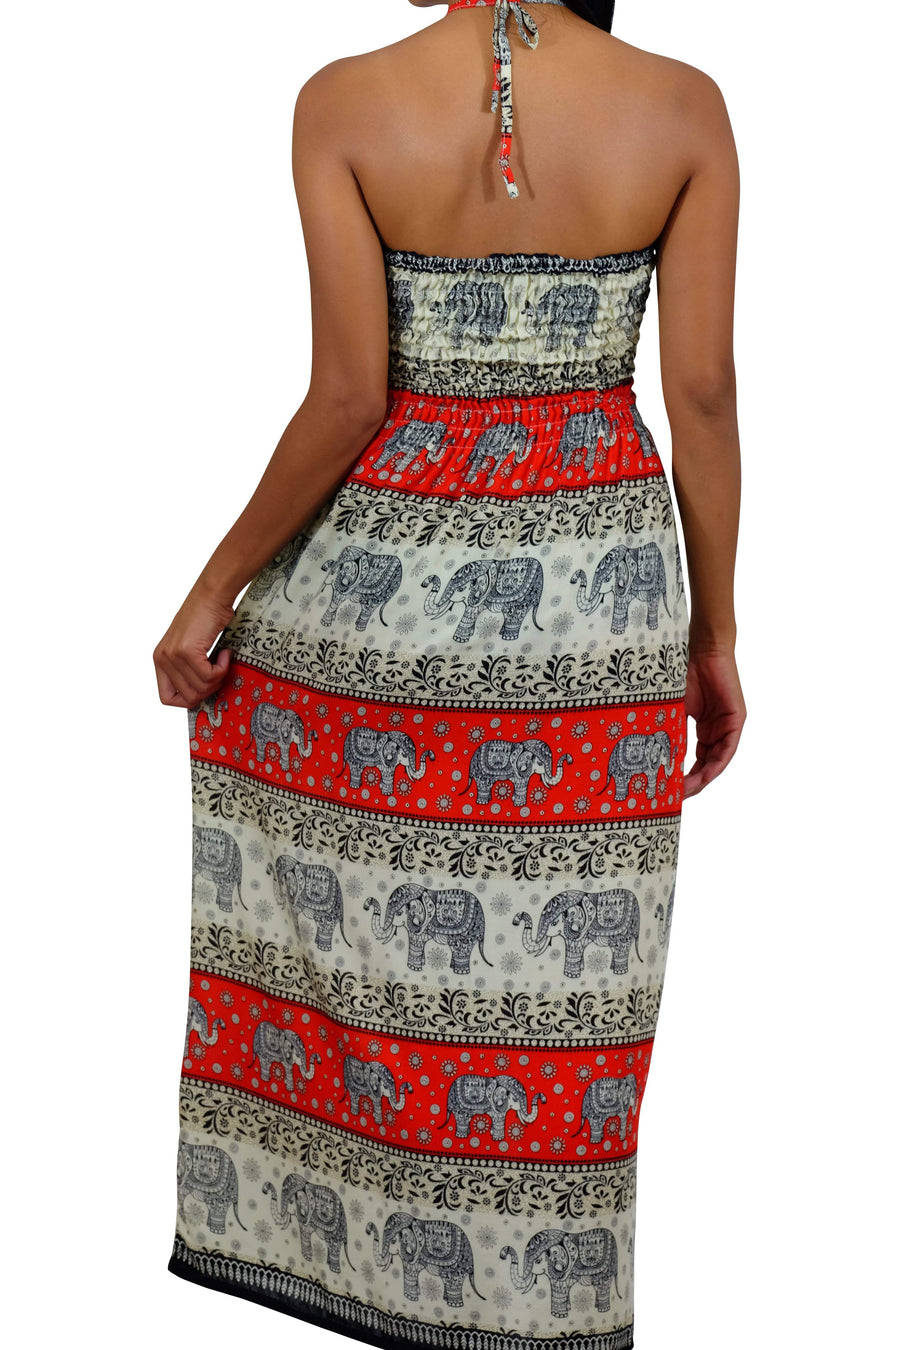 Elephant Shirt Store Dress Chang Phun Halter Elephant Dress White and Dark Orange